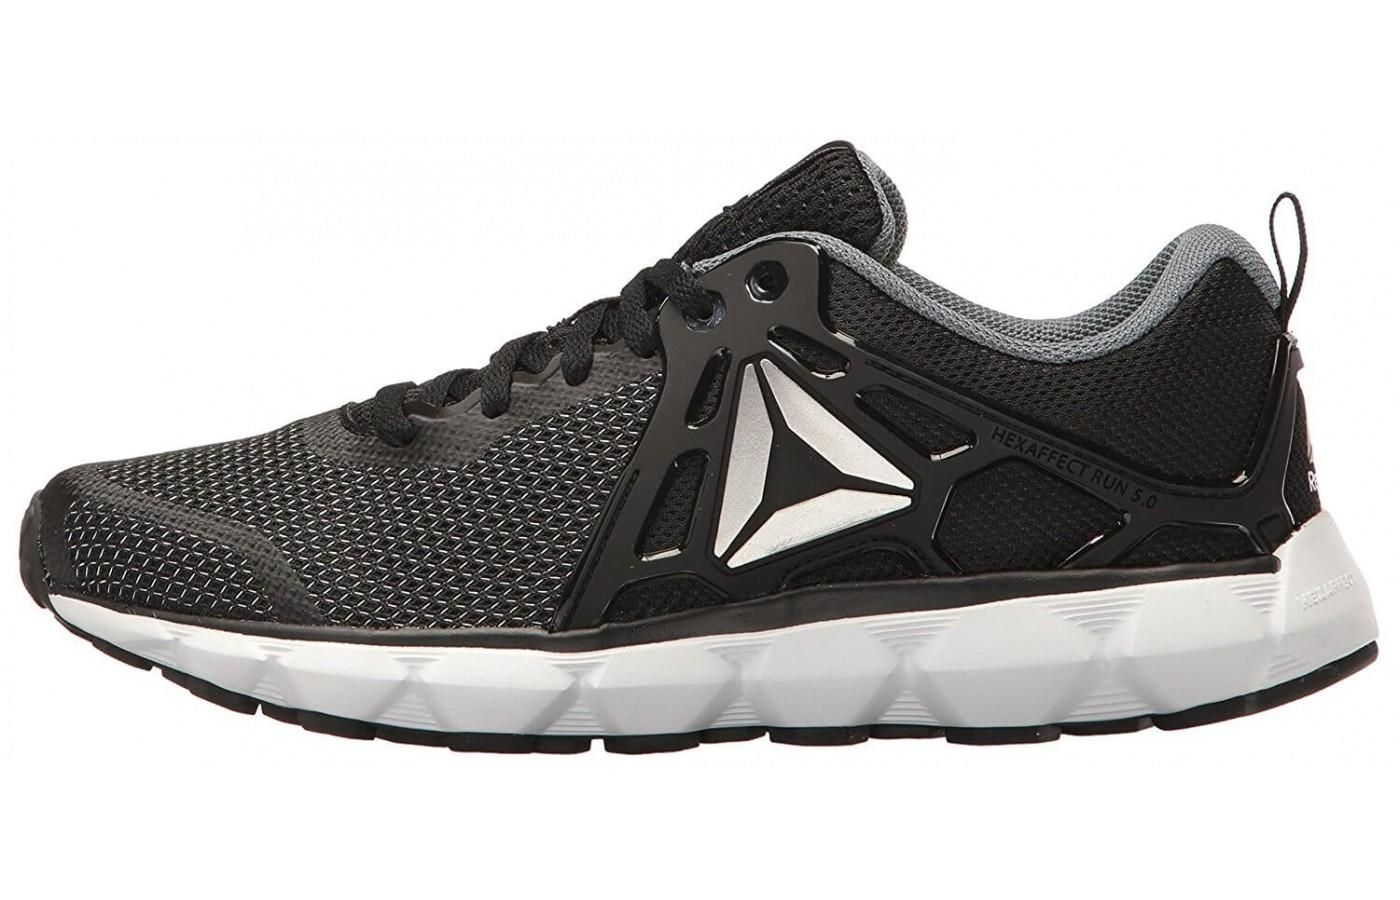 new products 83a2b 775a3 Reebok Hexaffect Run 5.0